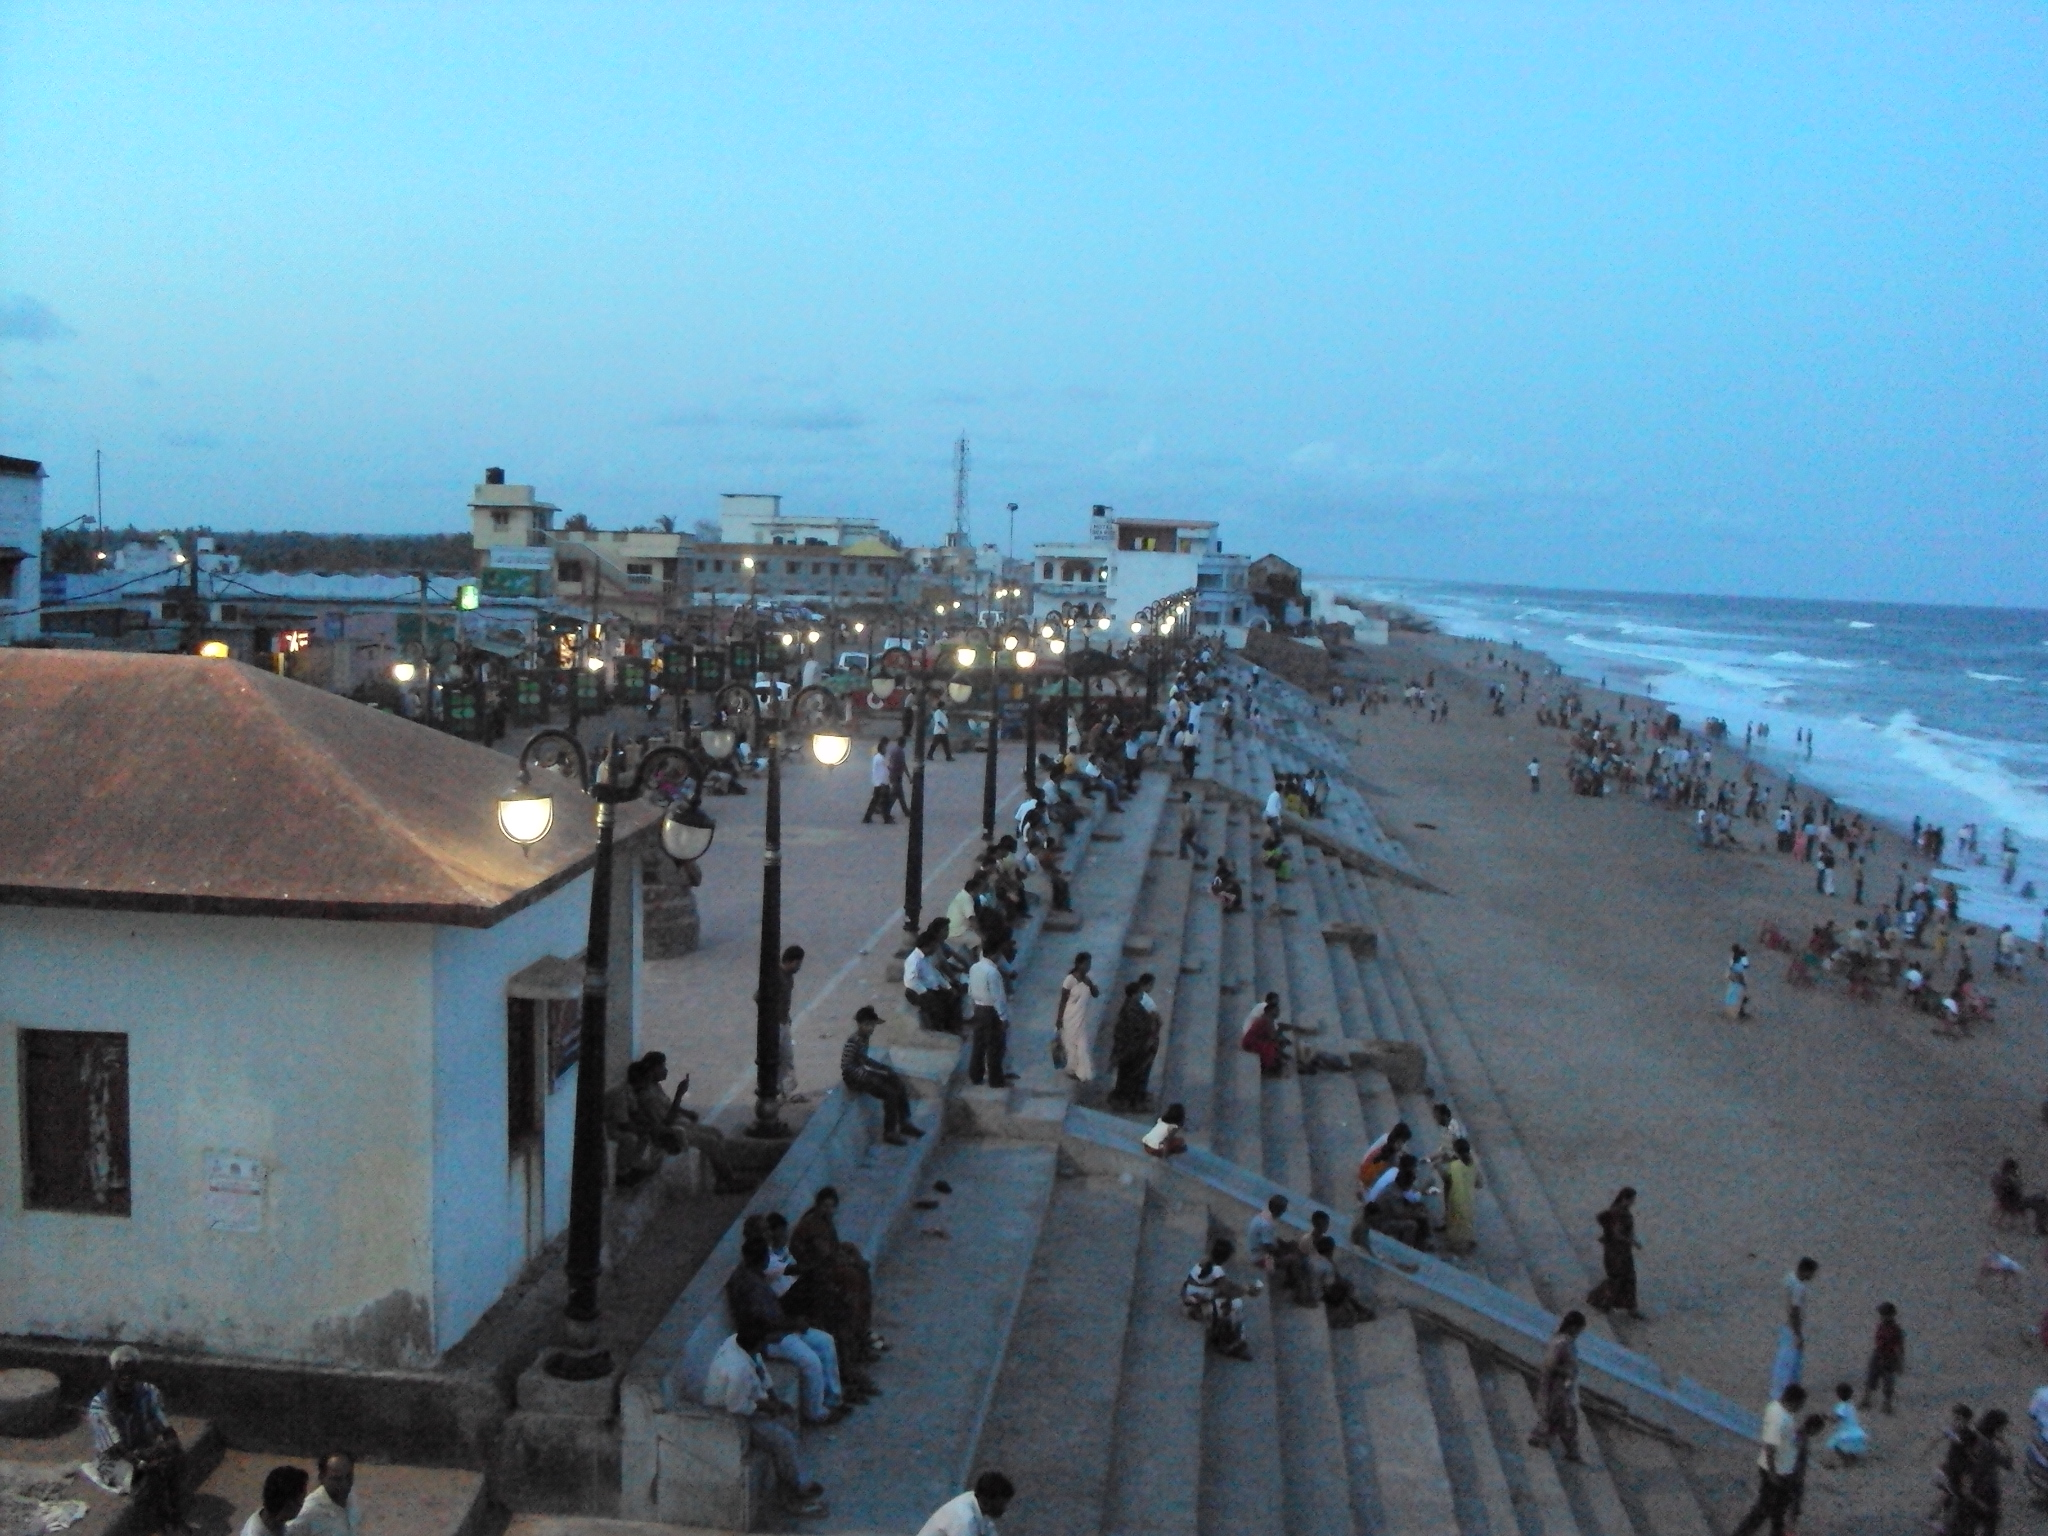 Gopalpur_busy_beach